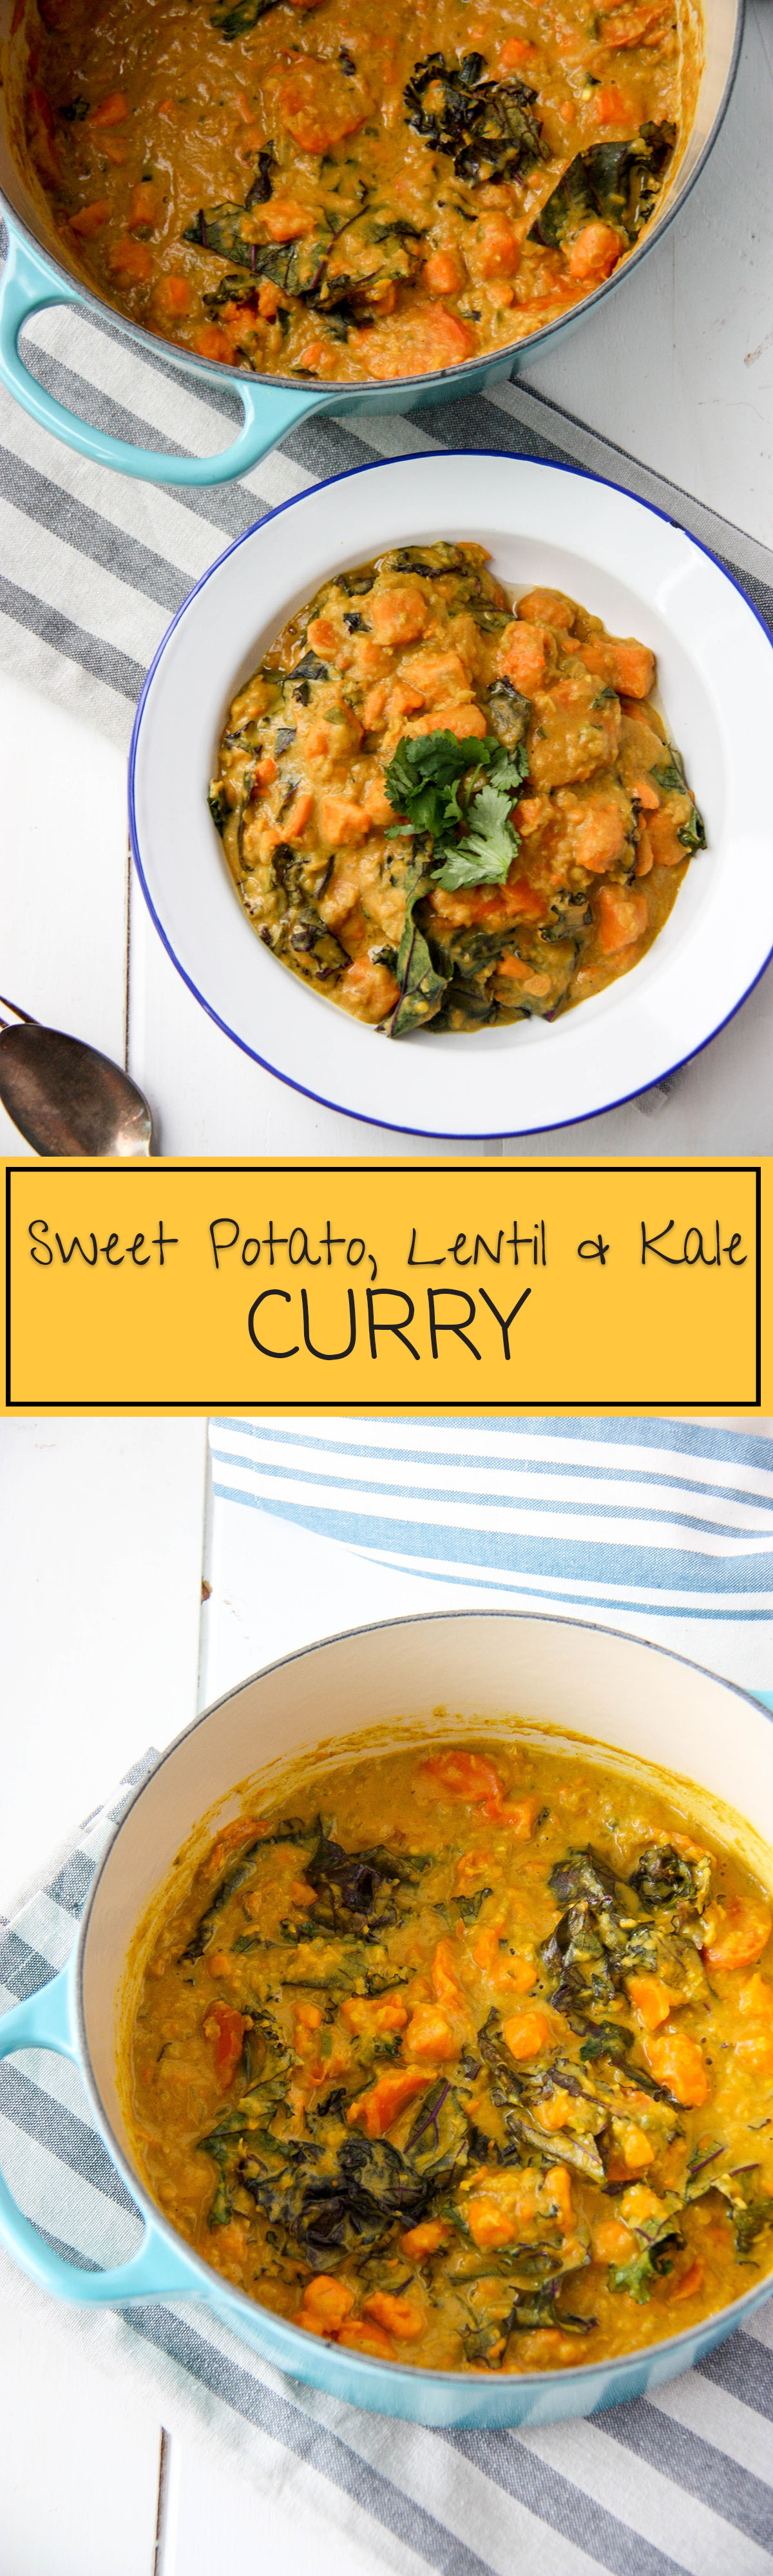 Sweet Potato, Lentil & Kale Curry - perfect vegetarian weeknight meal, healthy www.thehomecookskitchen.com